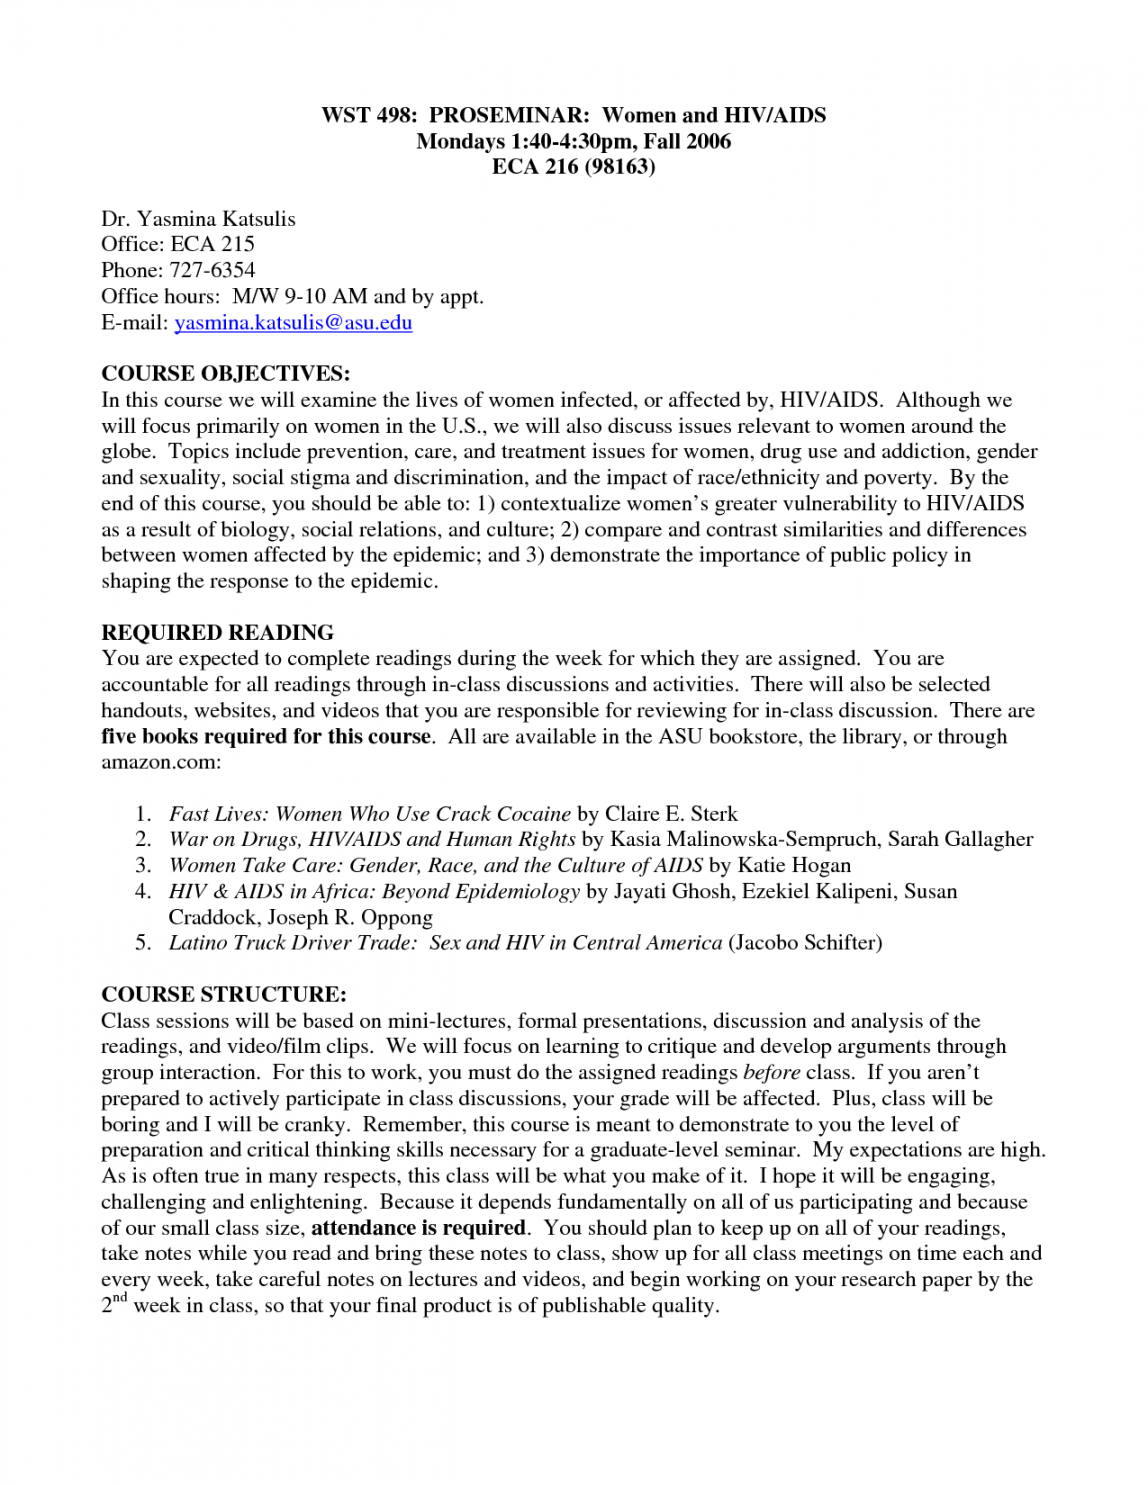 printable 014 an example research proposal paper 614611 ~ museumlegs trade proposal template word